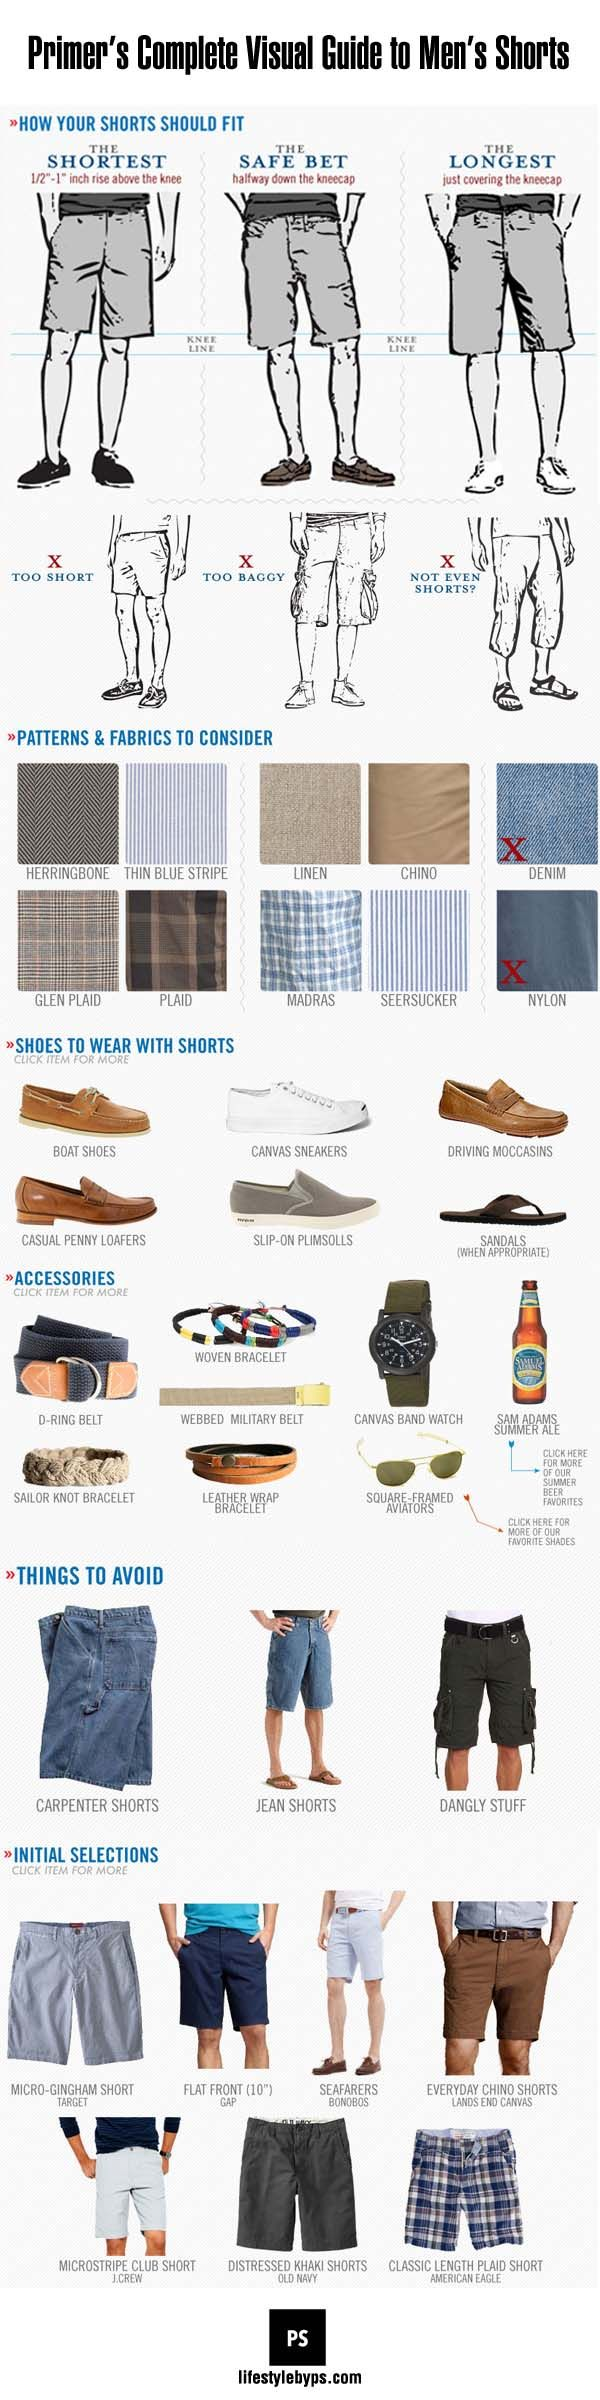 Visual guide to men's shorts- dressing guide for Dad :)   (Also note: no white belts - I told you real men don't wear white belts!) LOL